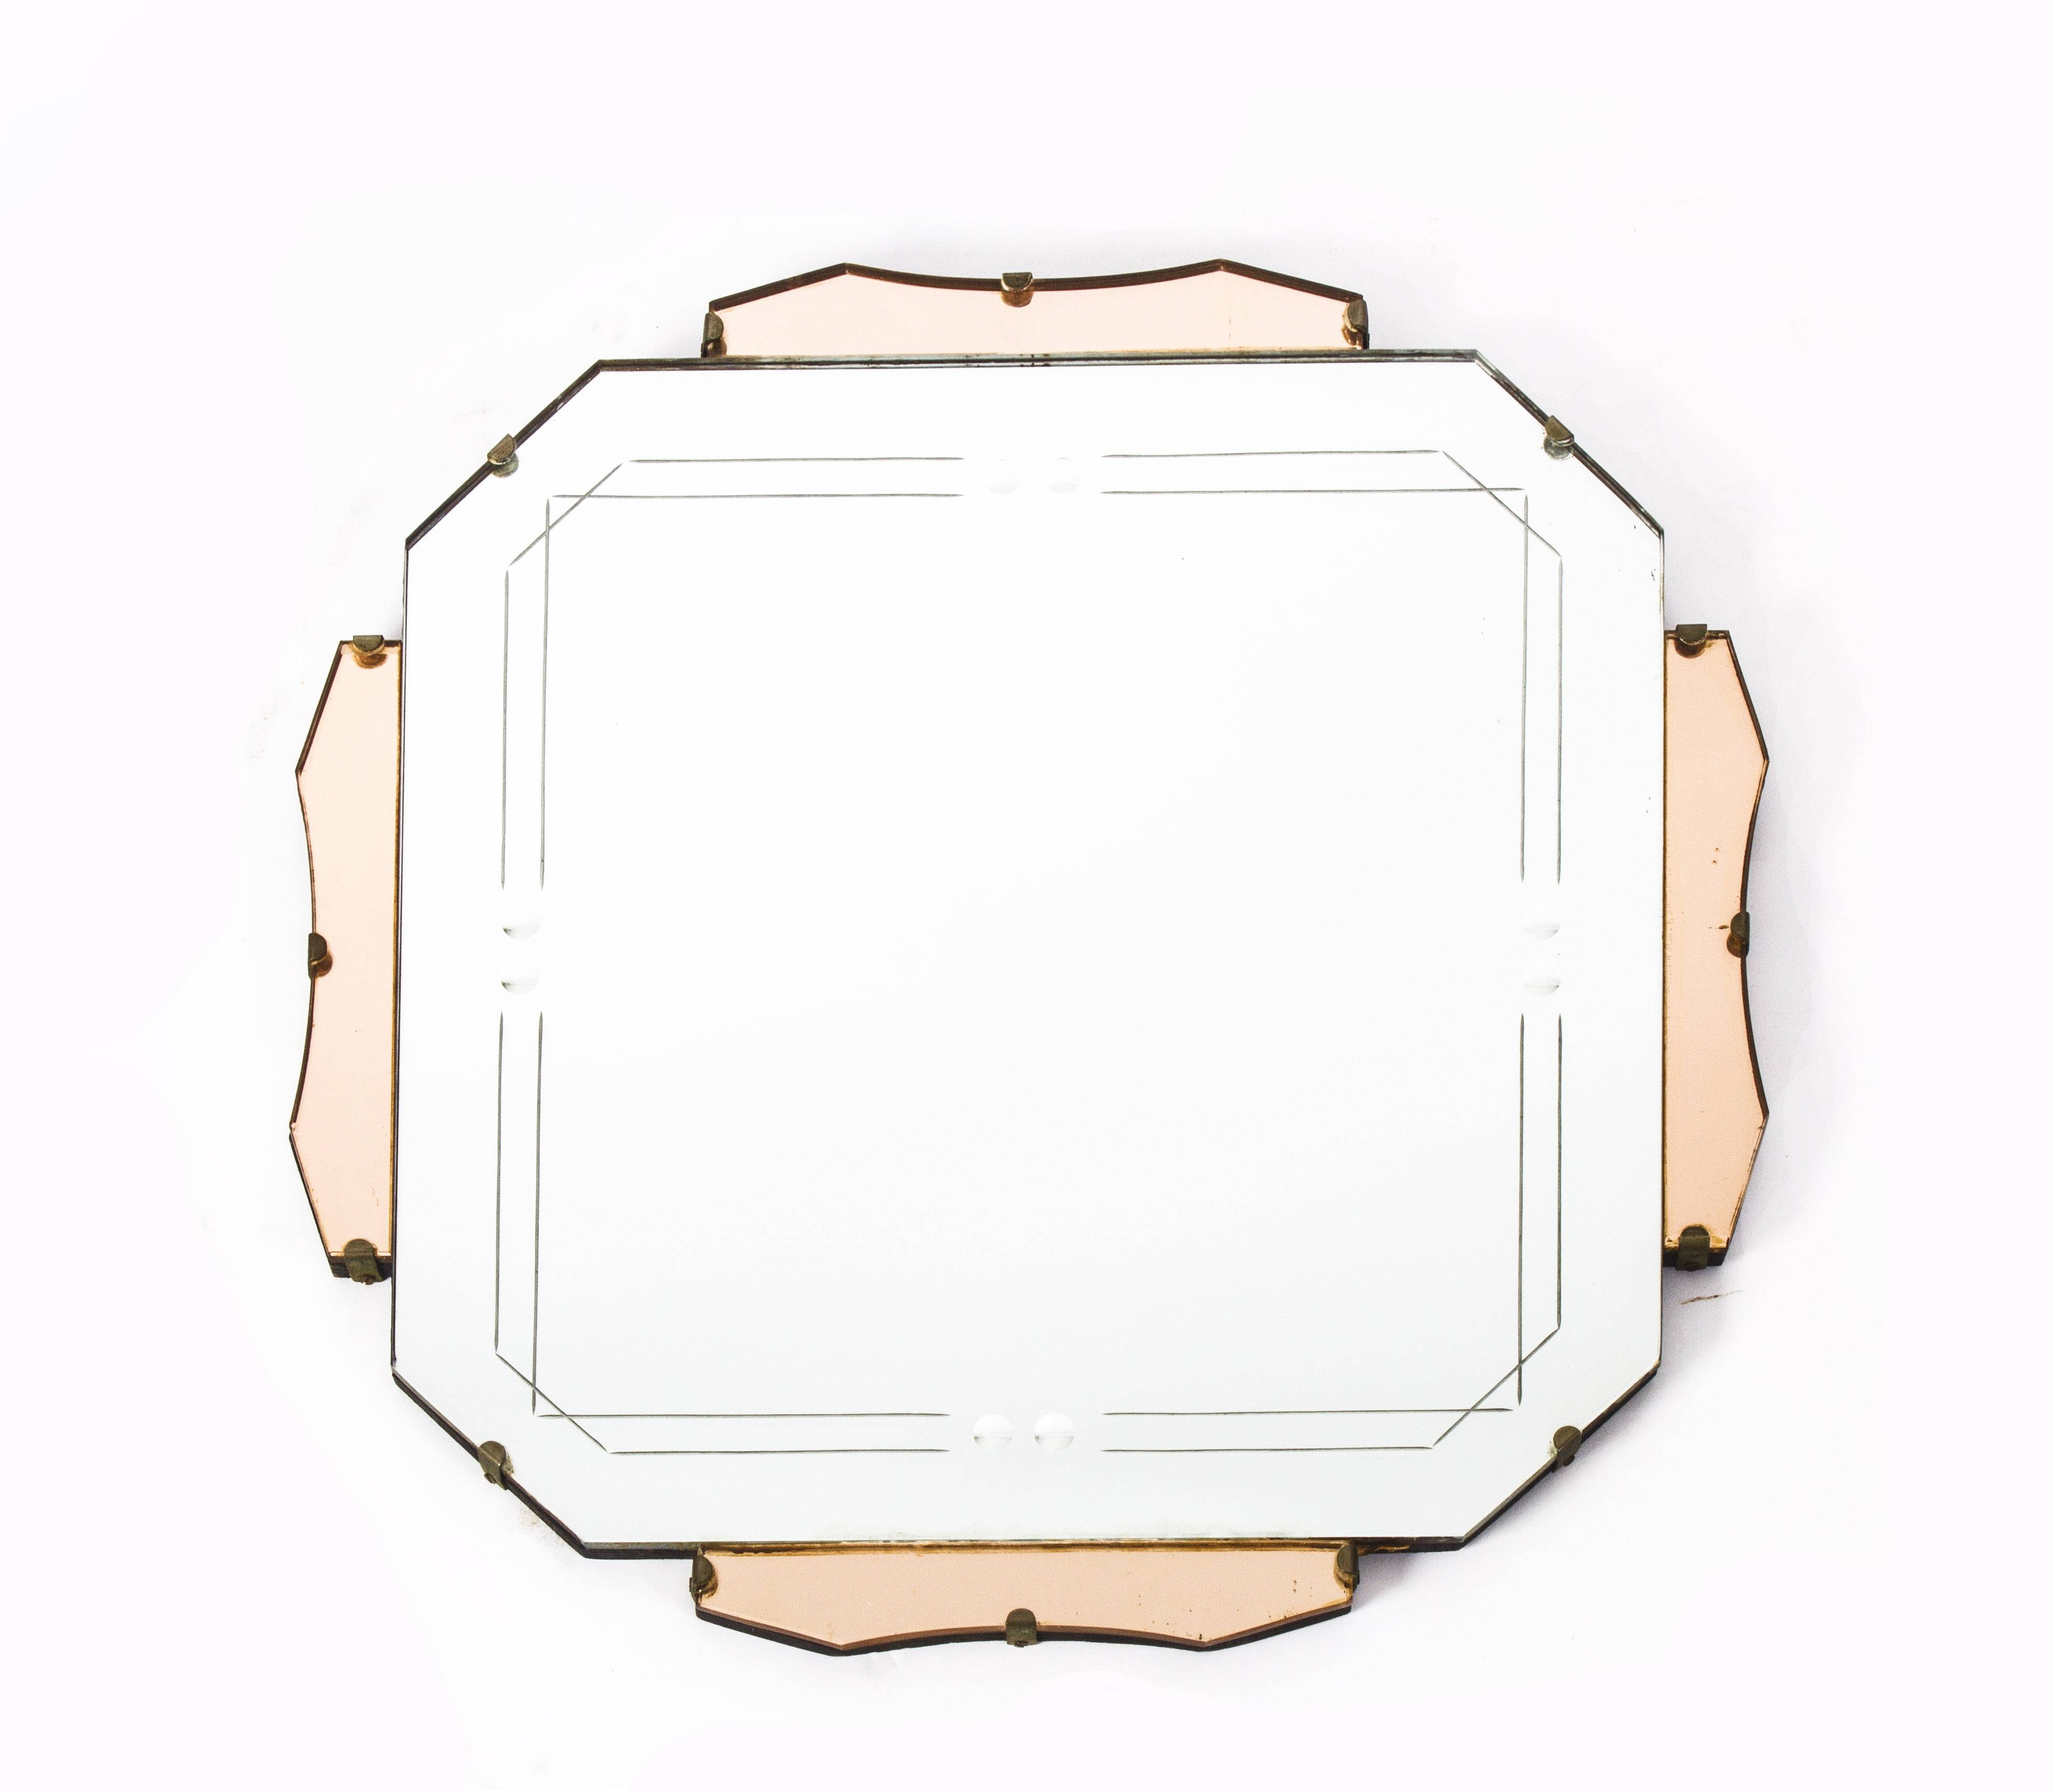 Antique Art Deco Mirror C.1920 | Vinterior inside Antique Art Deco Mirrors (Image 4 of 25)